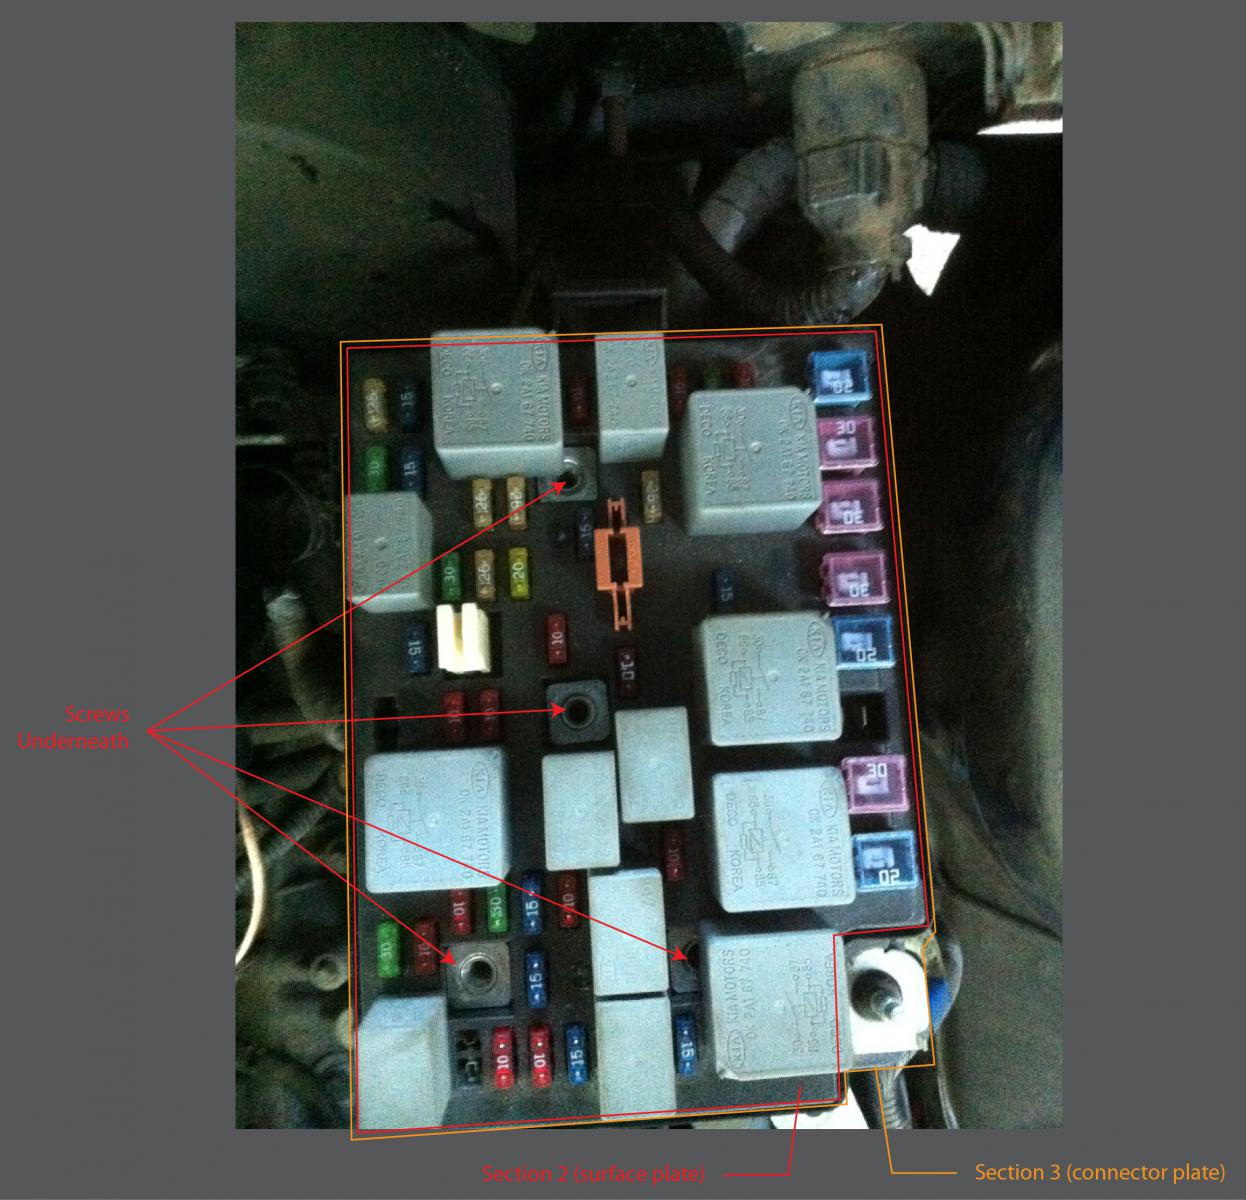 02 Kia Spectra - Engine Compartment Fuse Box Removal? | Kia ForumKia Forum